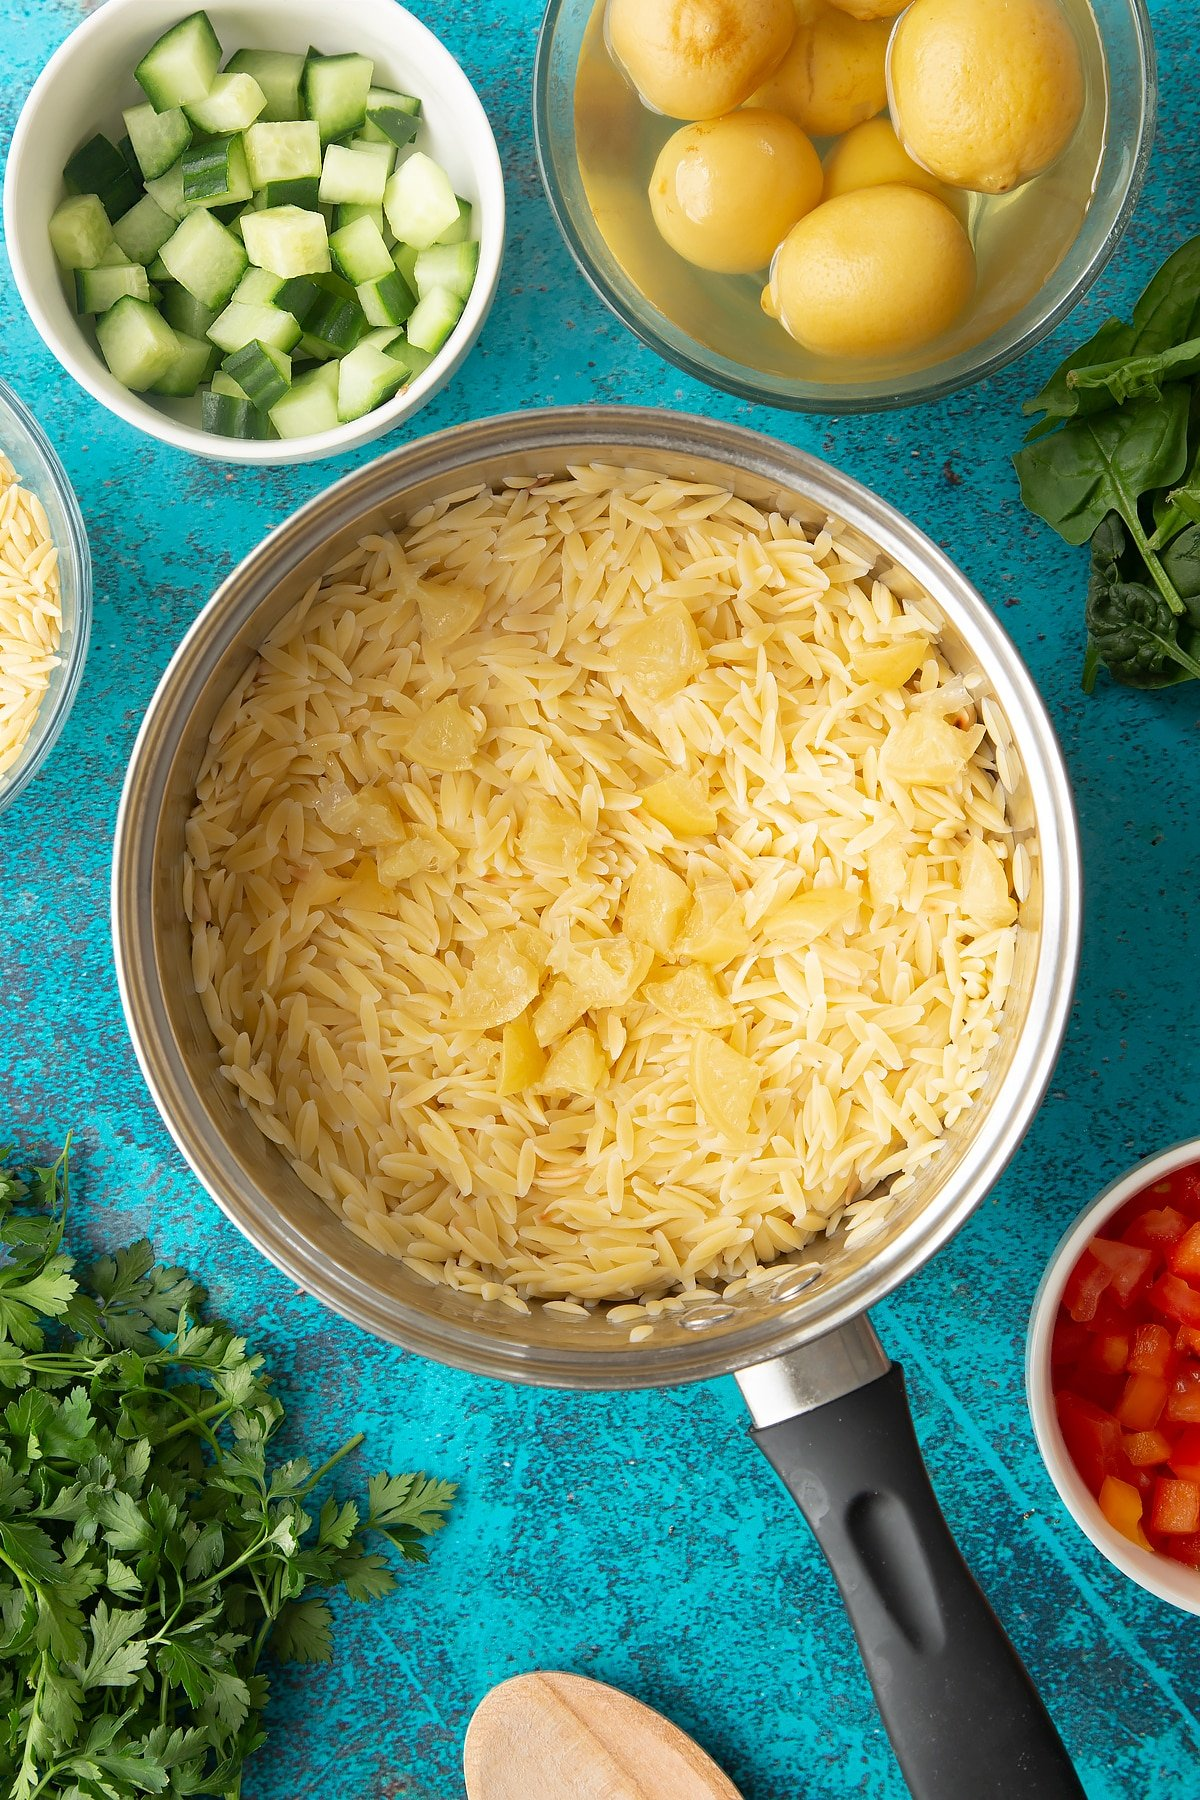 Cooked orzo in a saucepan with preserved lemons on top.